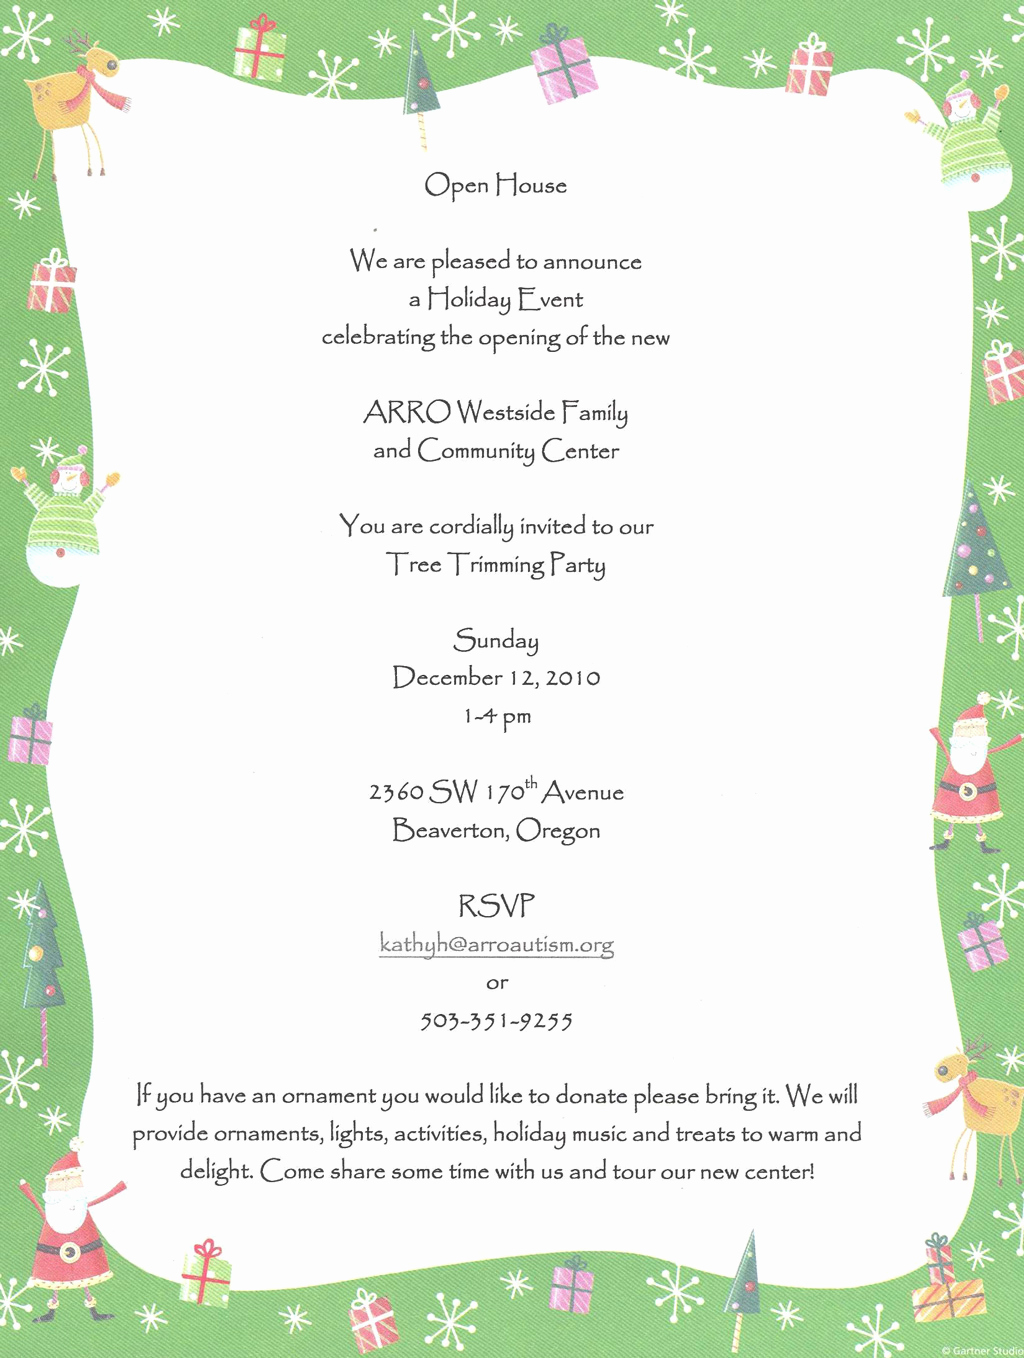 Open House Invitation Sample Luxury Graduation 2014 Open House Ideas